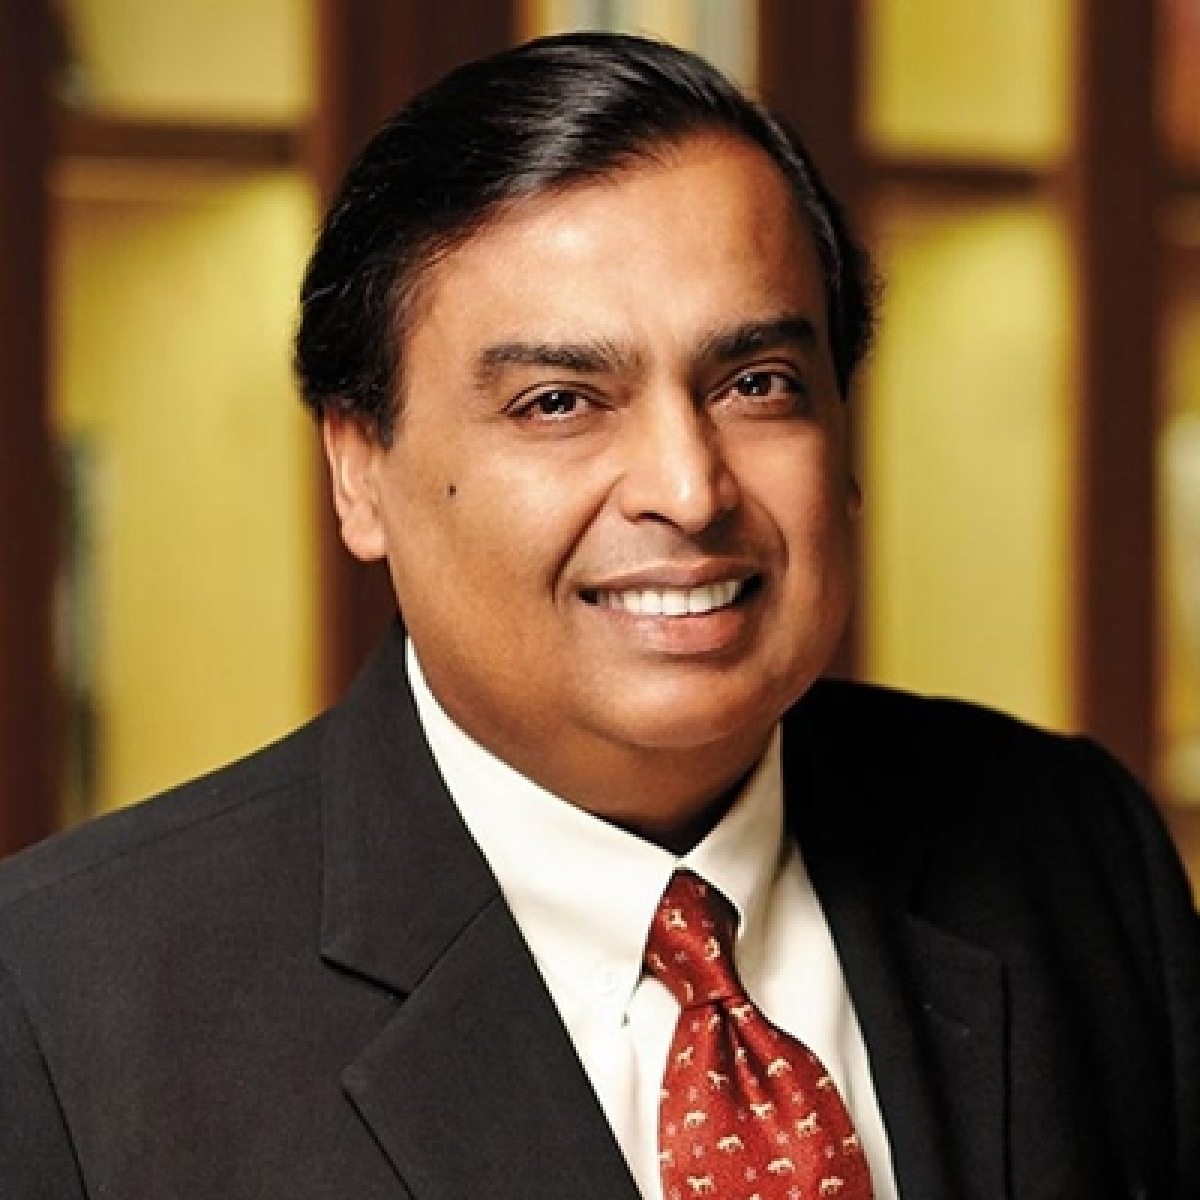 Reliance Industries to acquire retail, wholesale and other businesses of Future Group in Rs. 24,713 crore deal